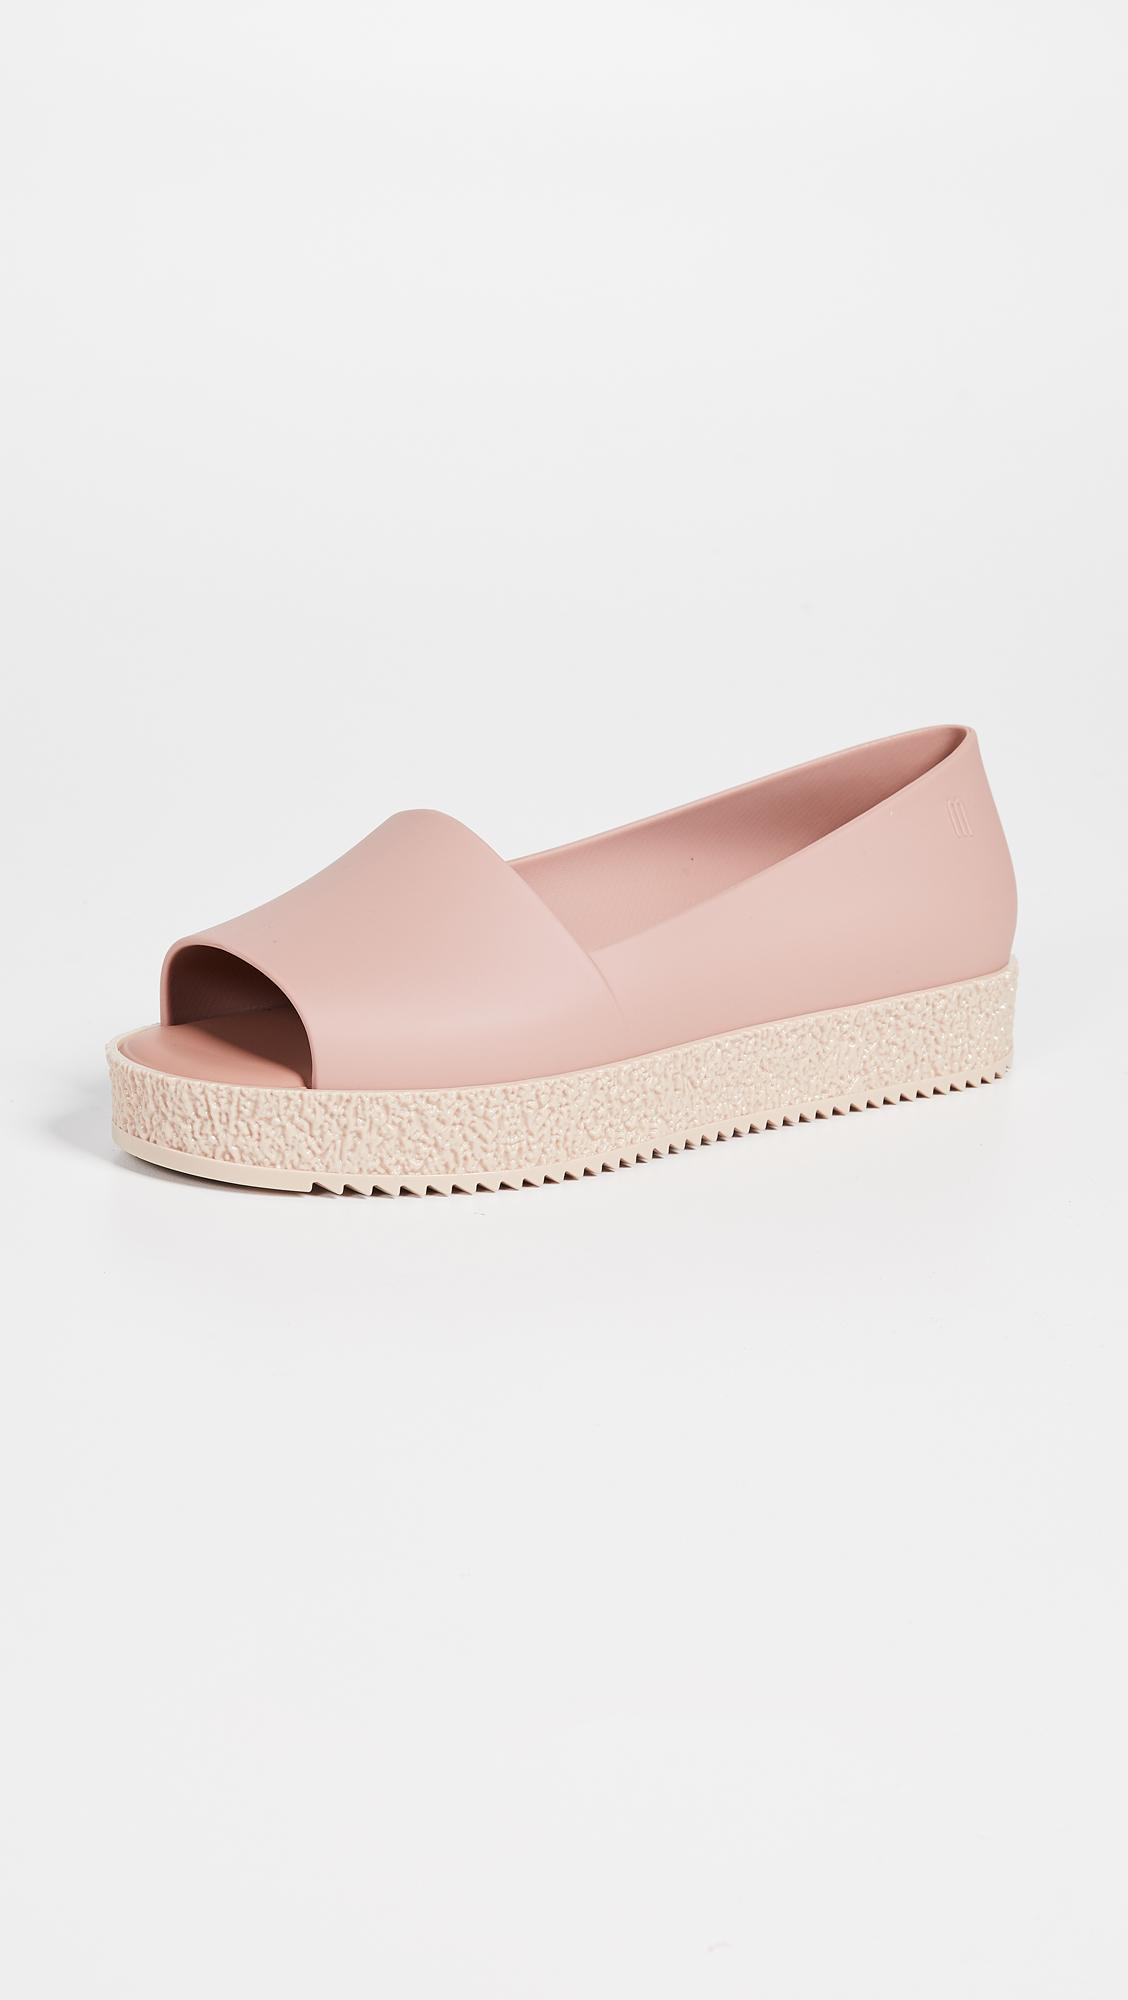 8c4c1f0c8aa Lyst - Melissa Puzzle Ad Flats in Pink